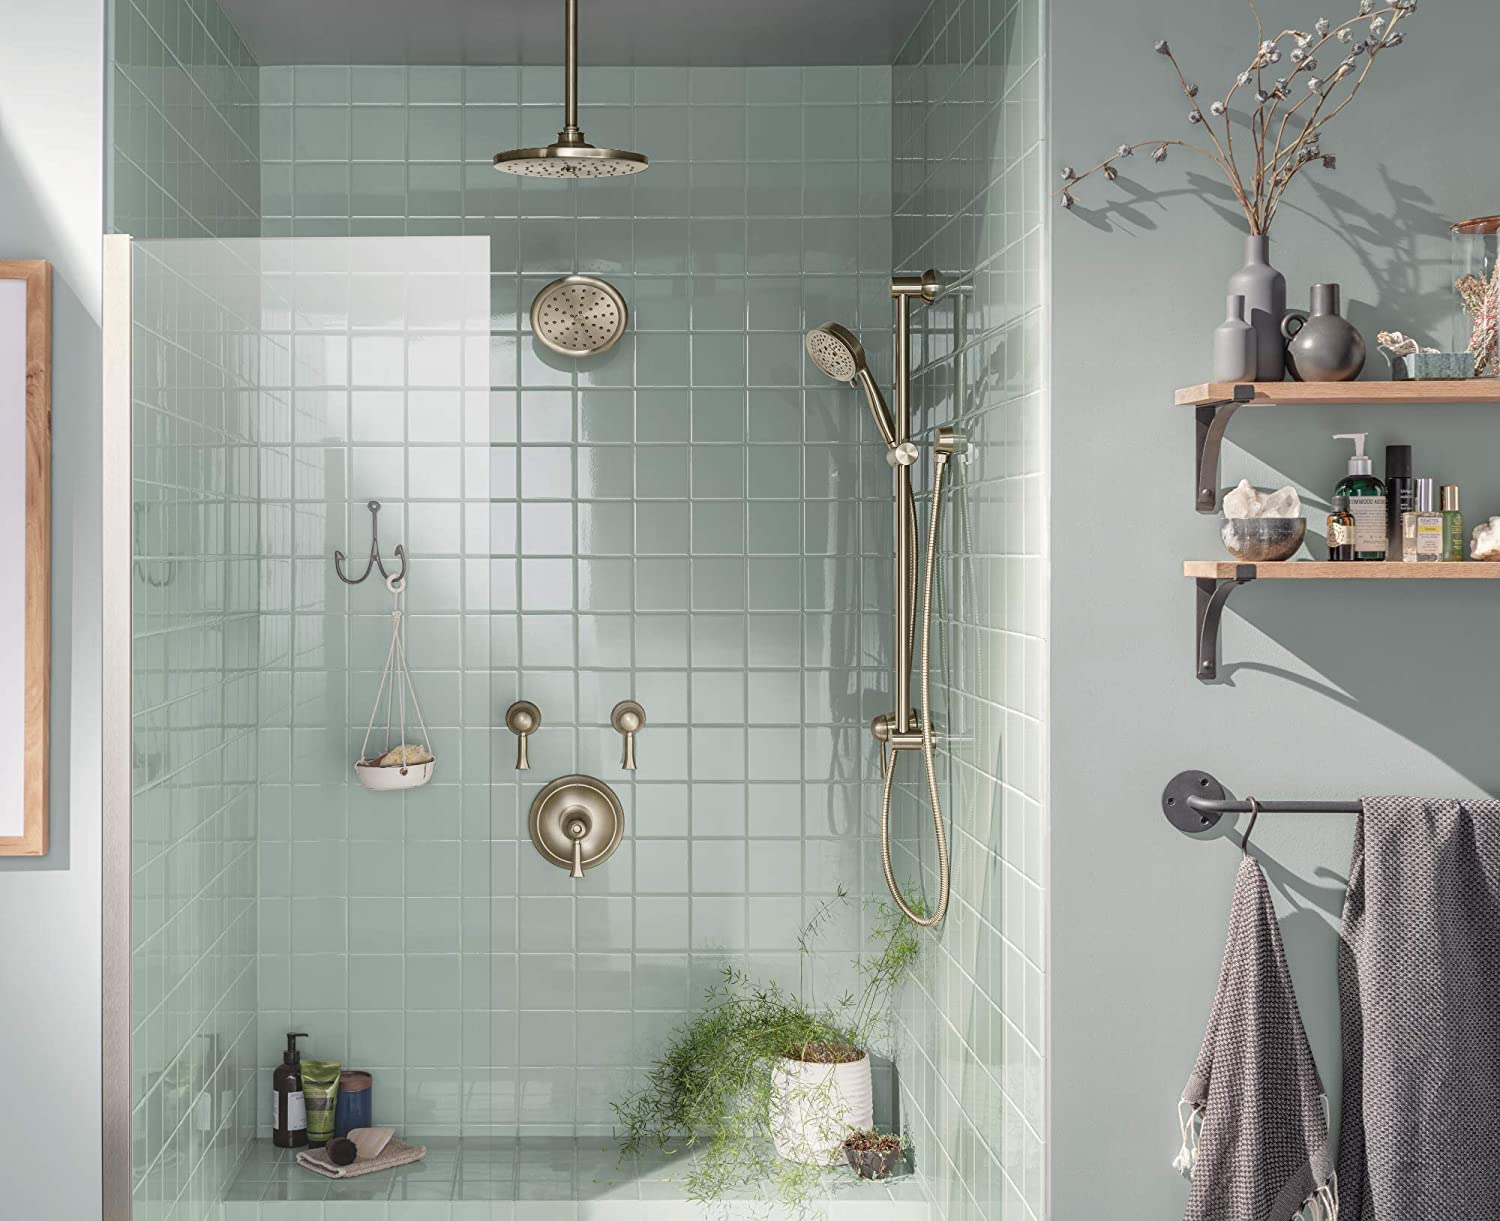 Brushed Nickel Moen S6310BN ExactTemp 7 One-Function Rainshower Showerhead with Immersion Technology at 2.5 GPM Flow Rate